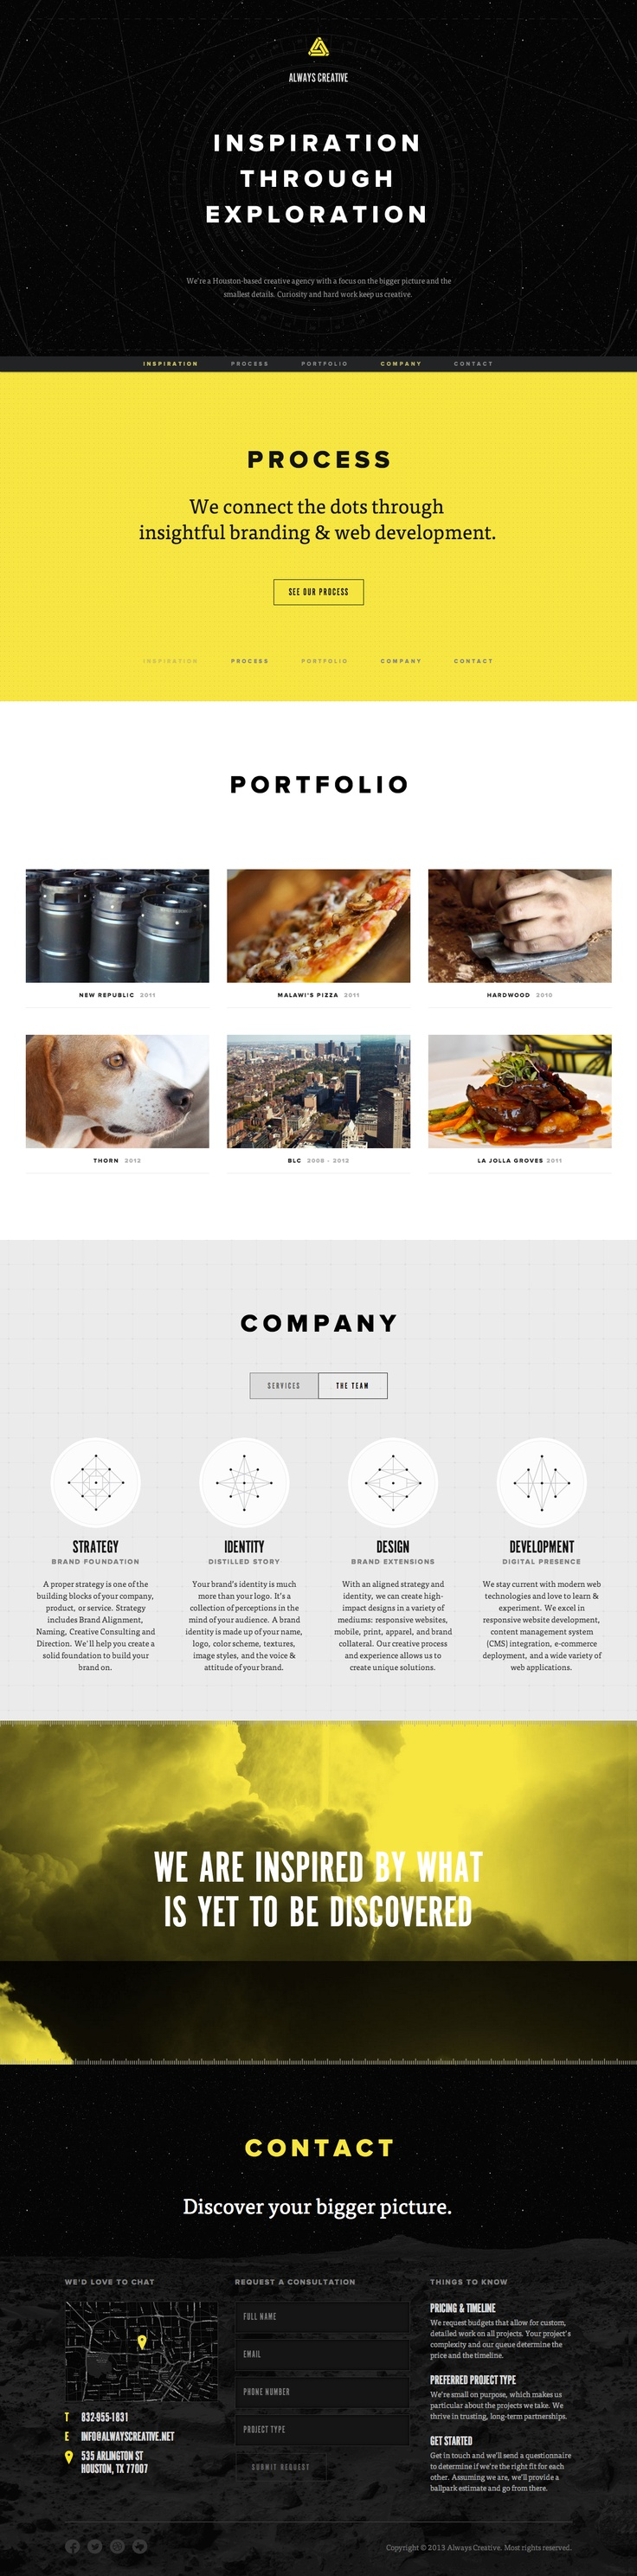 107 best www images on Pinterest | Graphics, Website designs and ...